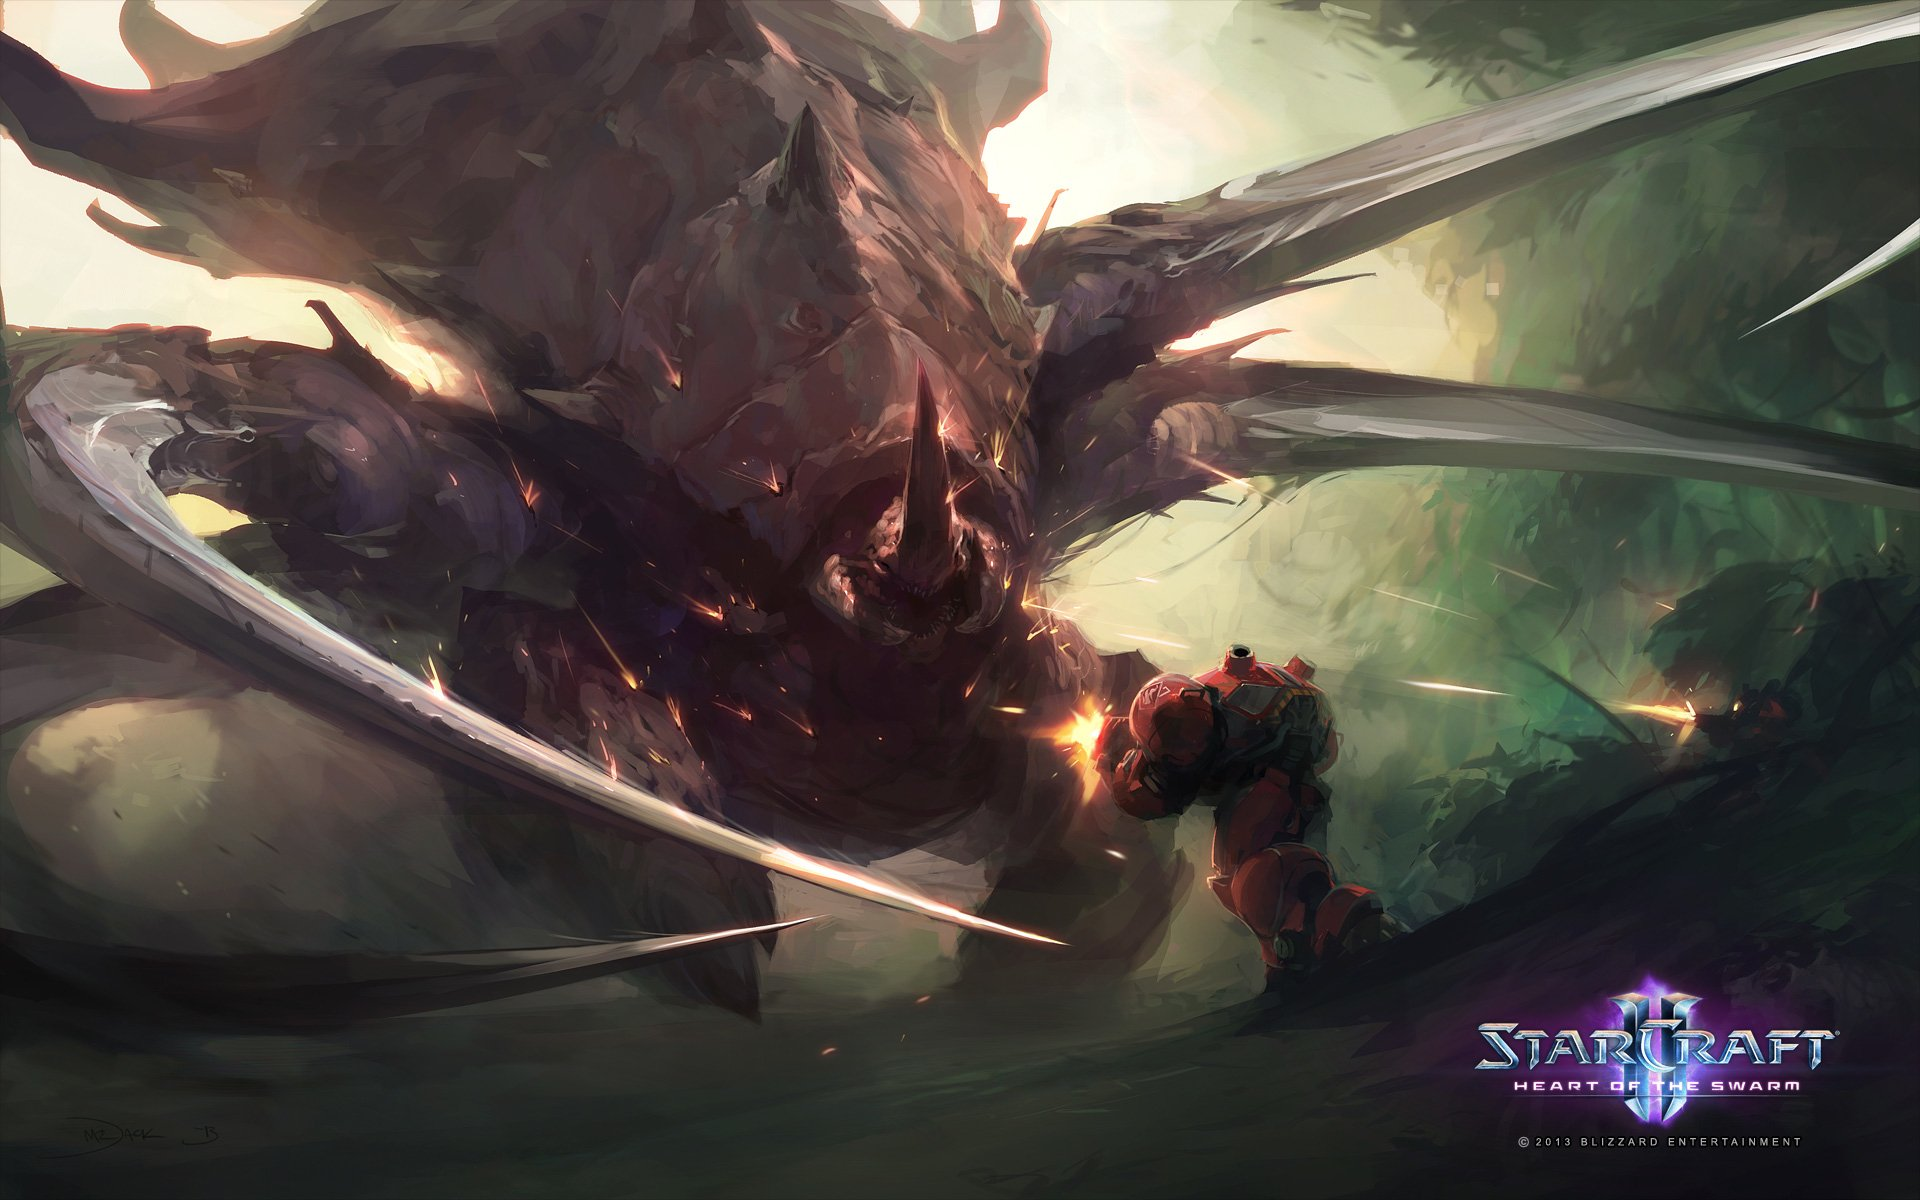 67 Starcraft Ii Heart Of The Swarm Hd Wallpapers